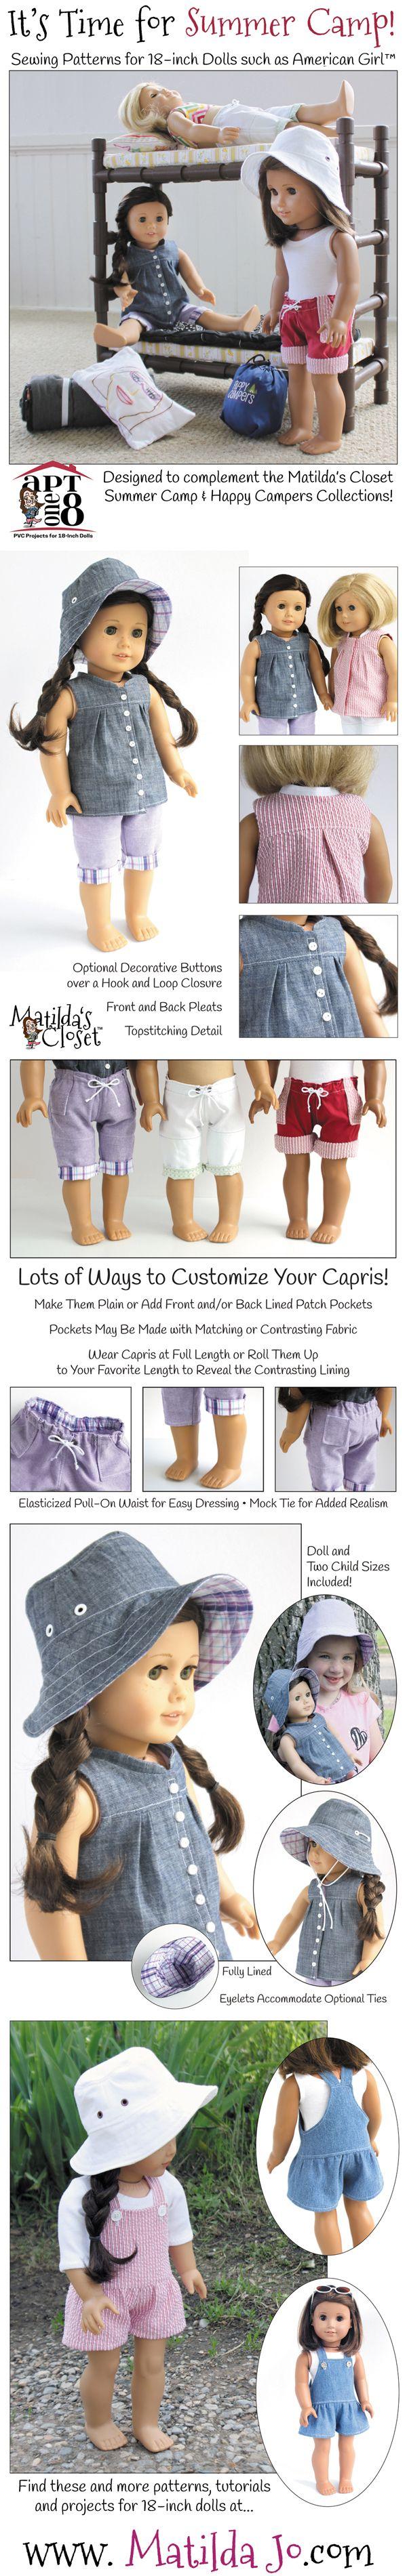 Summer Camp Collection 18-inch doll sewing patterns from Matilda Jo Originals, including roll-up capris, mock button-front shirt, bucket hat, shortalls and convertible bunk beds!